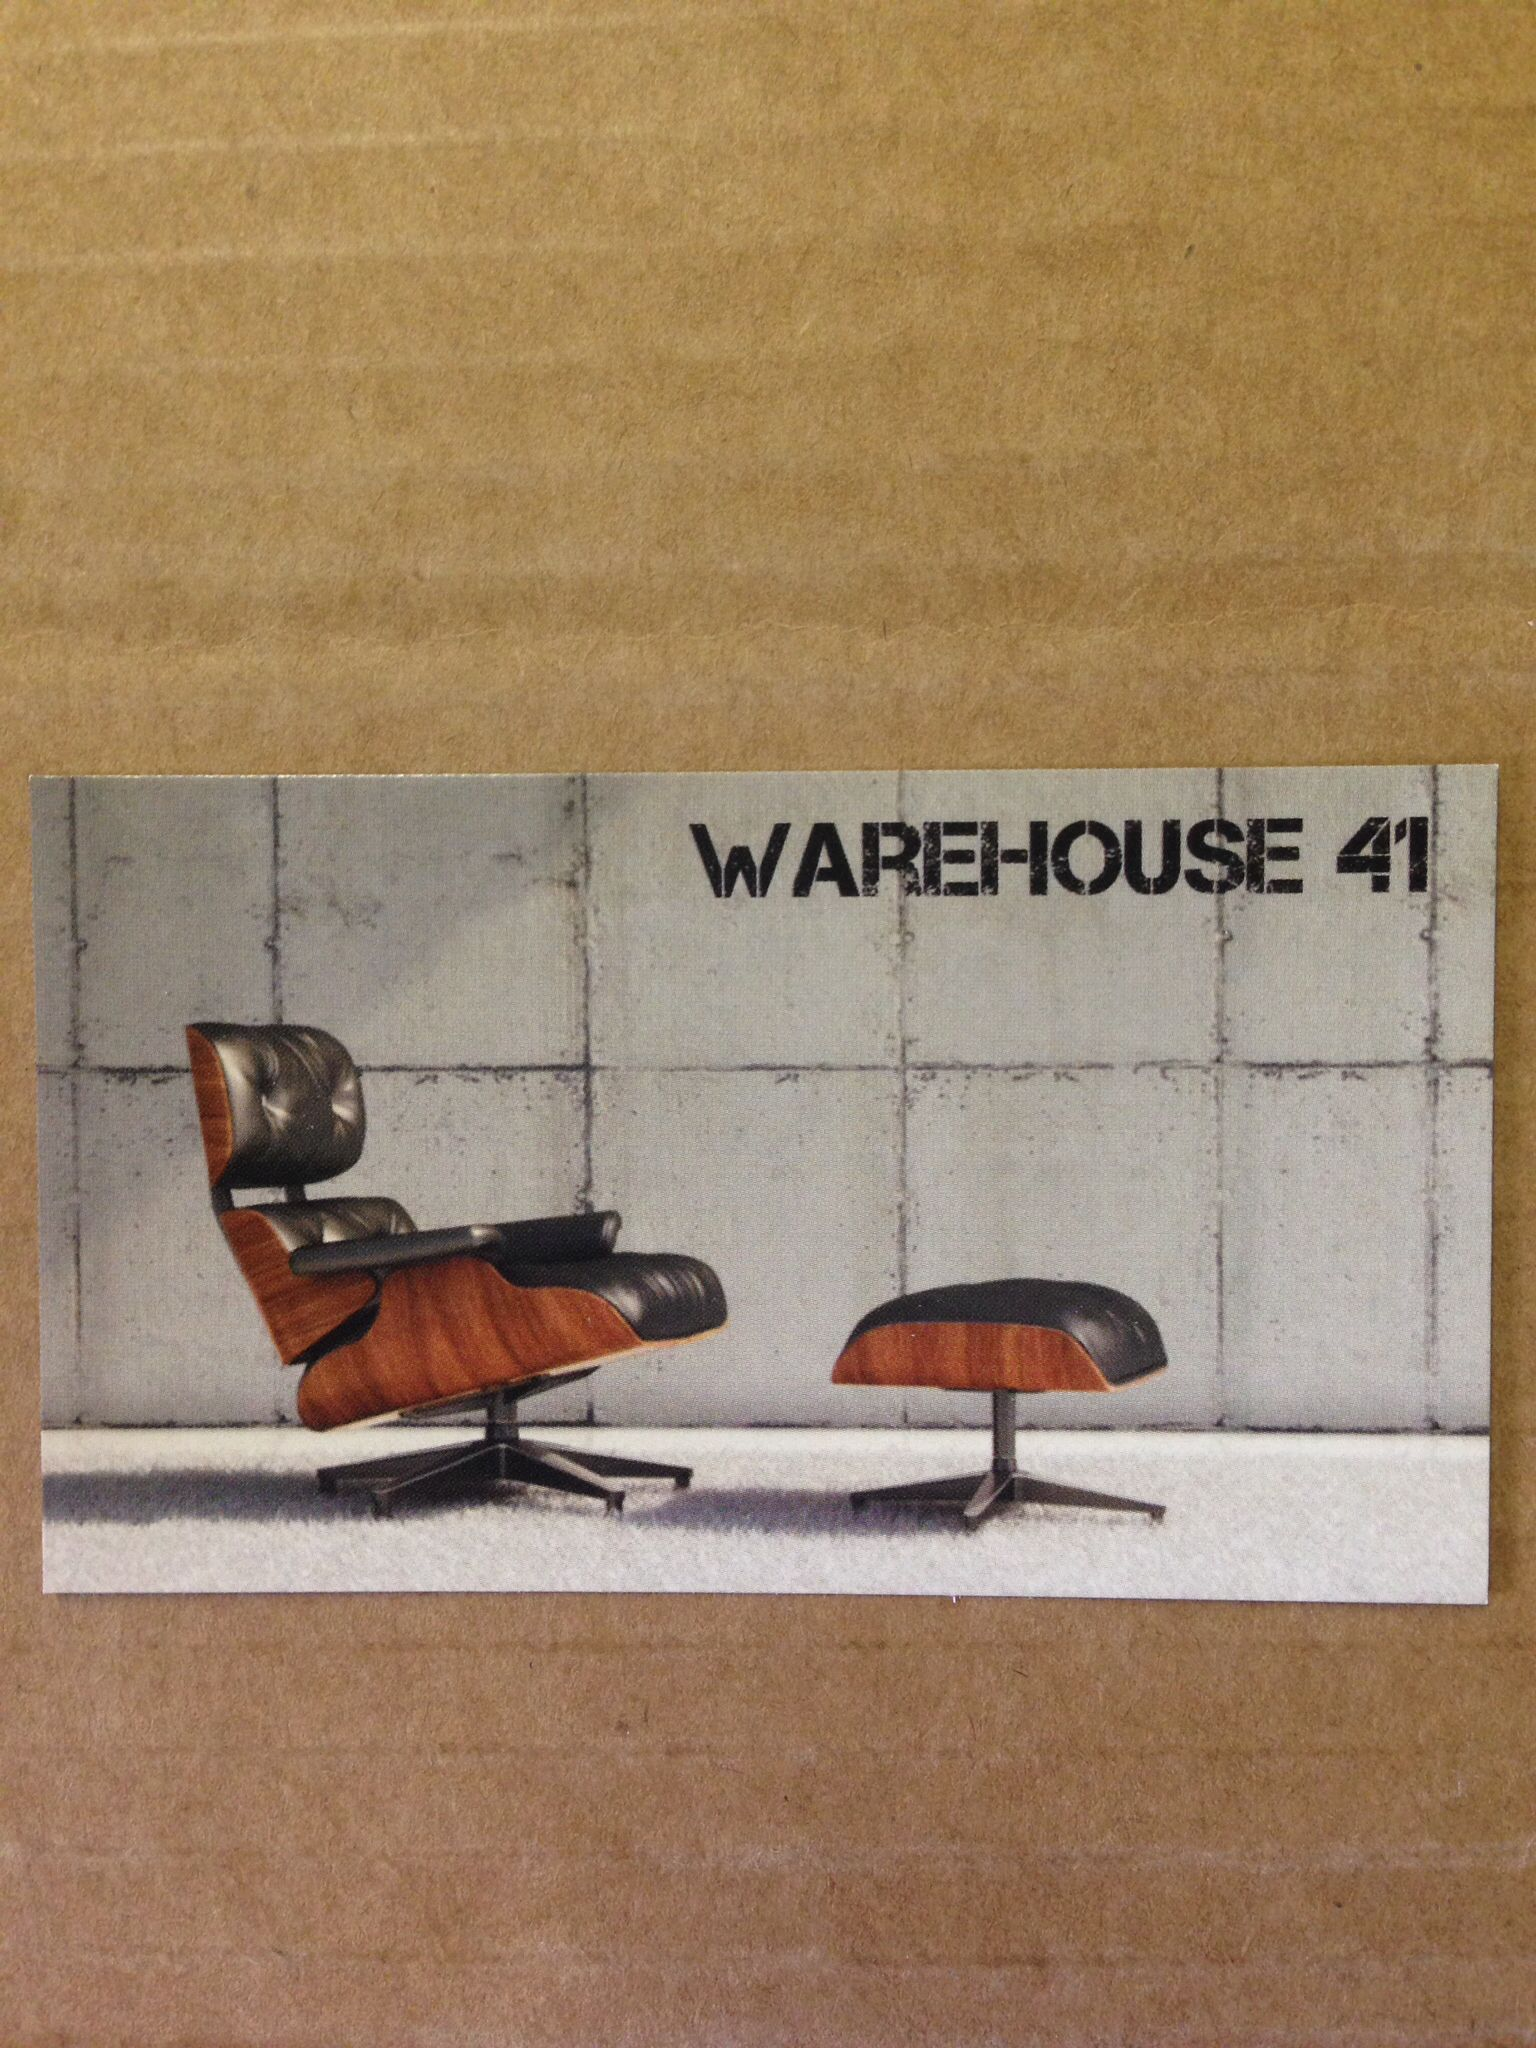 Our new business cards have arrived available warehouse 41 at our new business cards have arrived available warehouse 41 at nostalgia on mccalla reheart Images